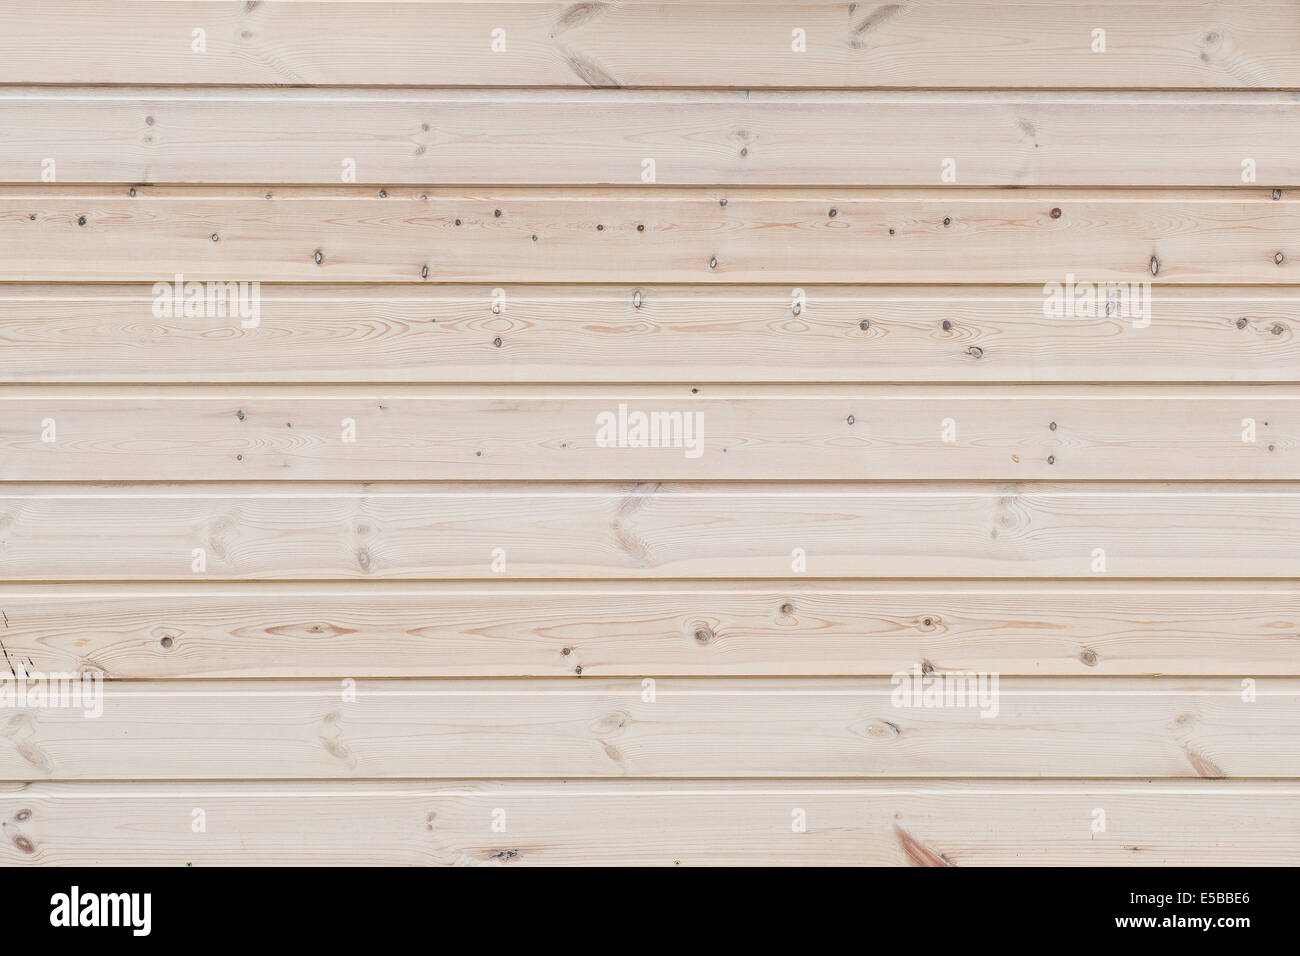 wooden background - horizontally stacked pine boards - Stock Image